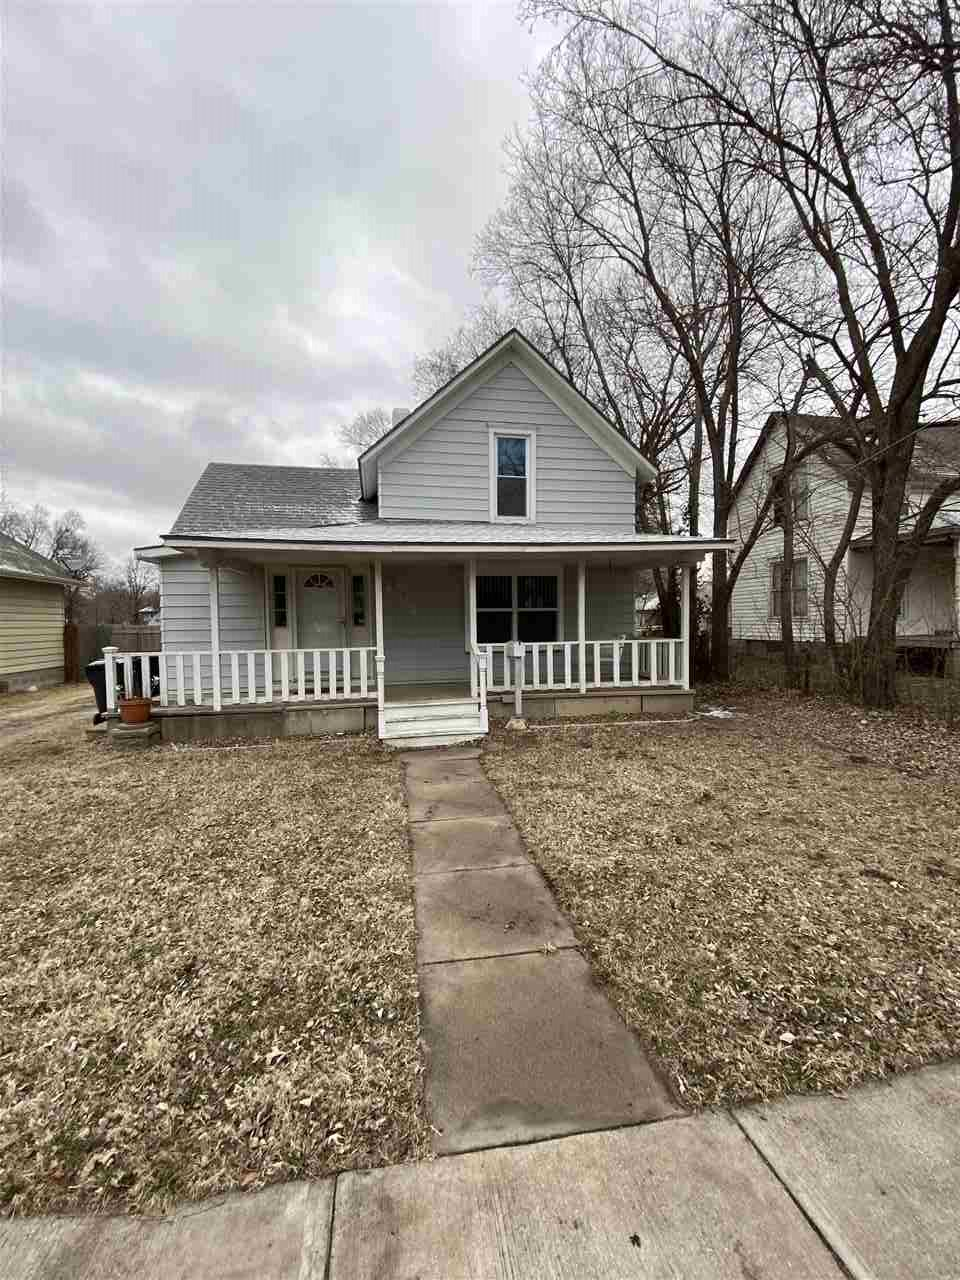 This quaint home has a lot of potential and the owner has already done many updates. New deck and good sized backyard makes it great for entertaining!